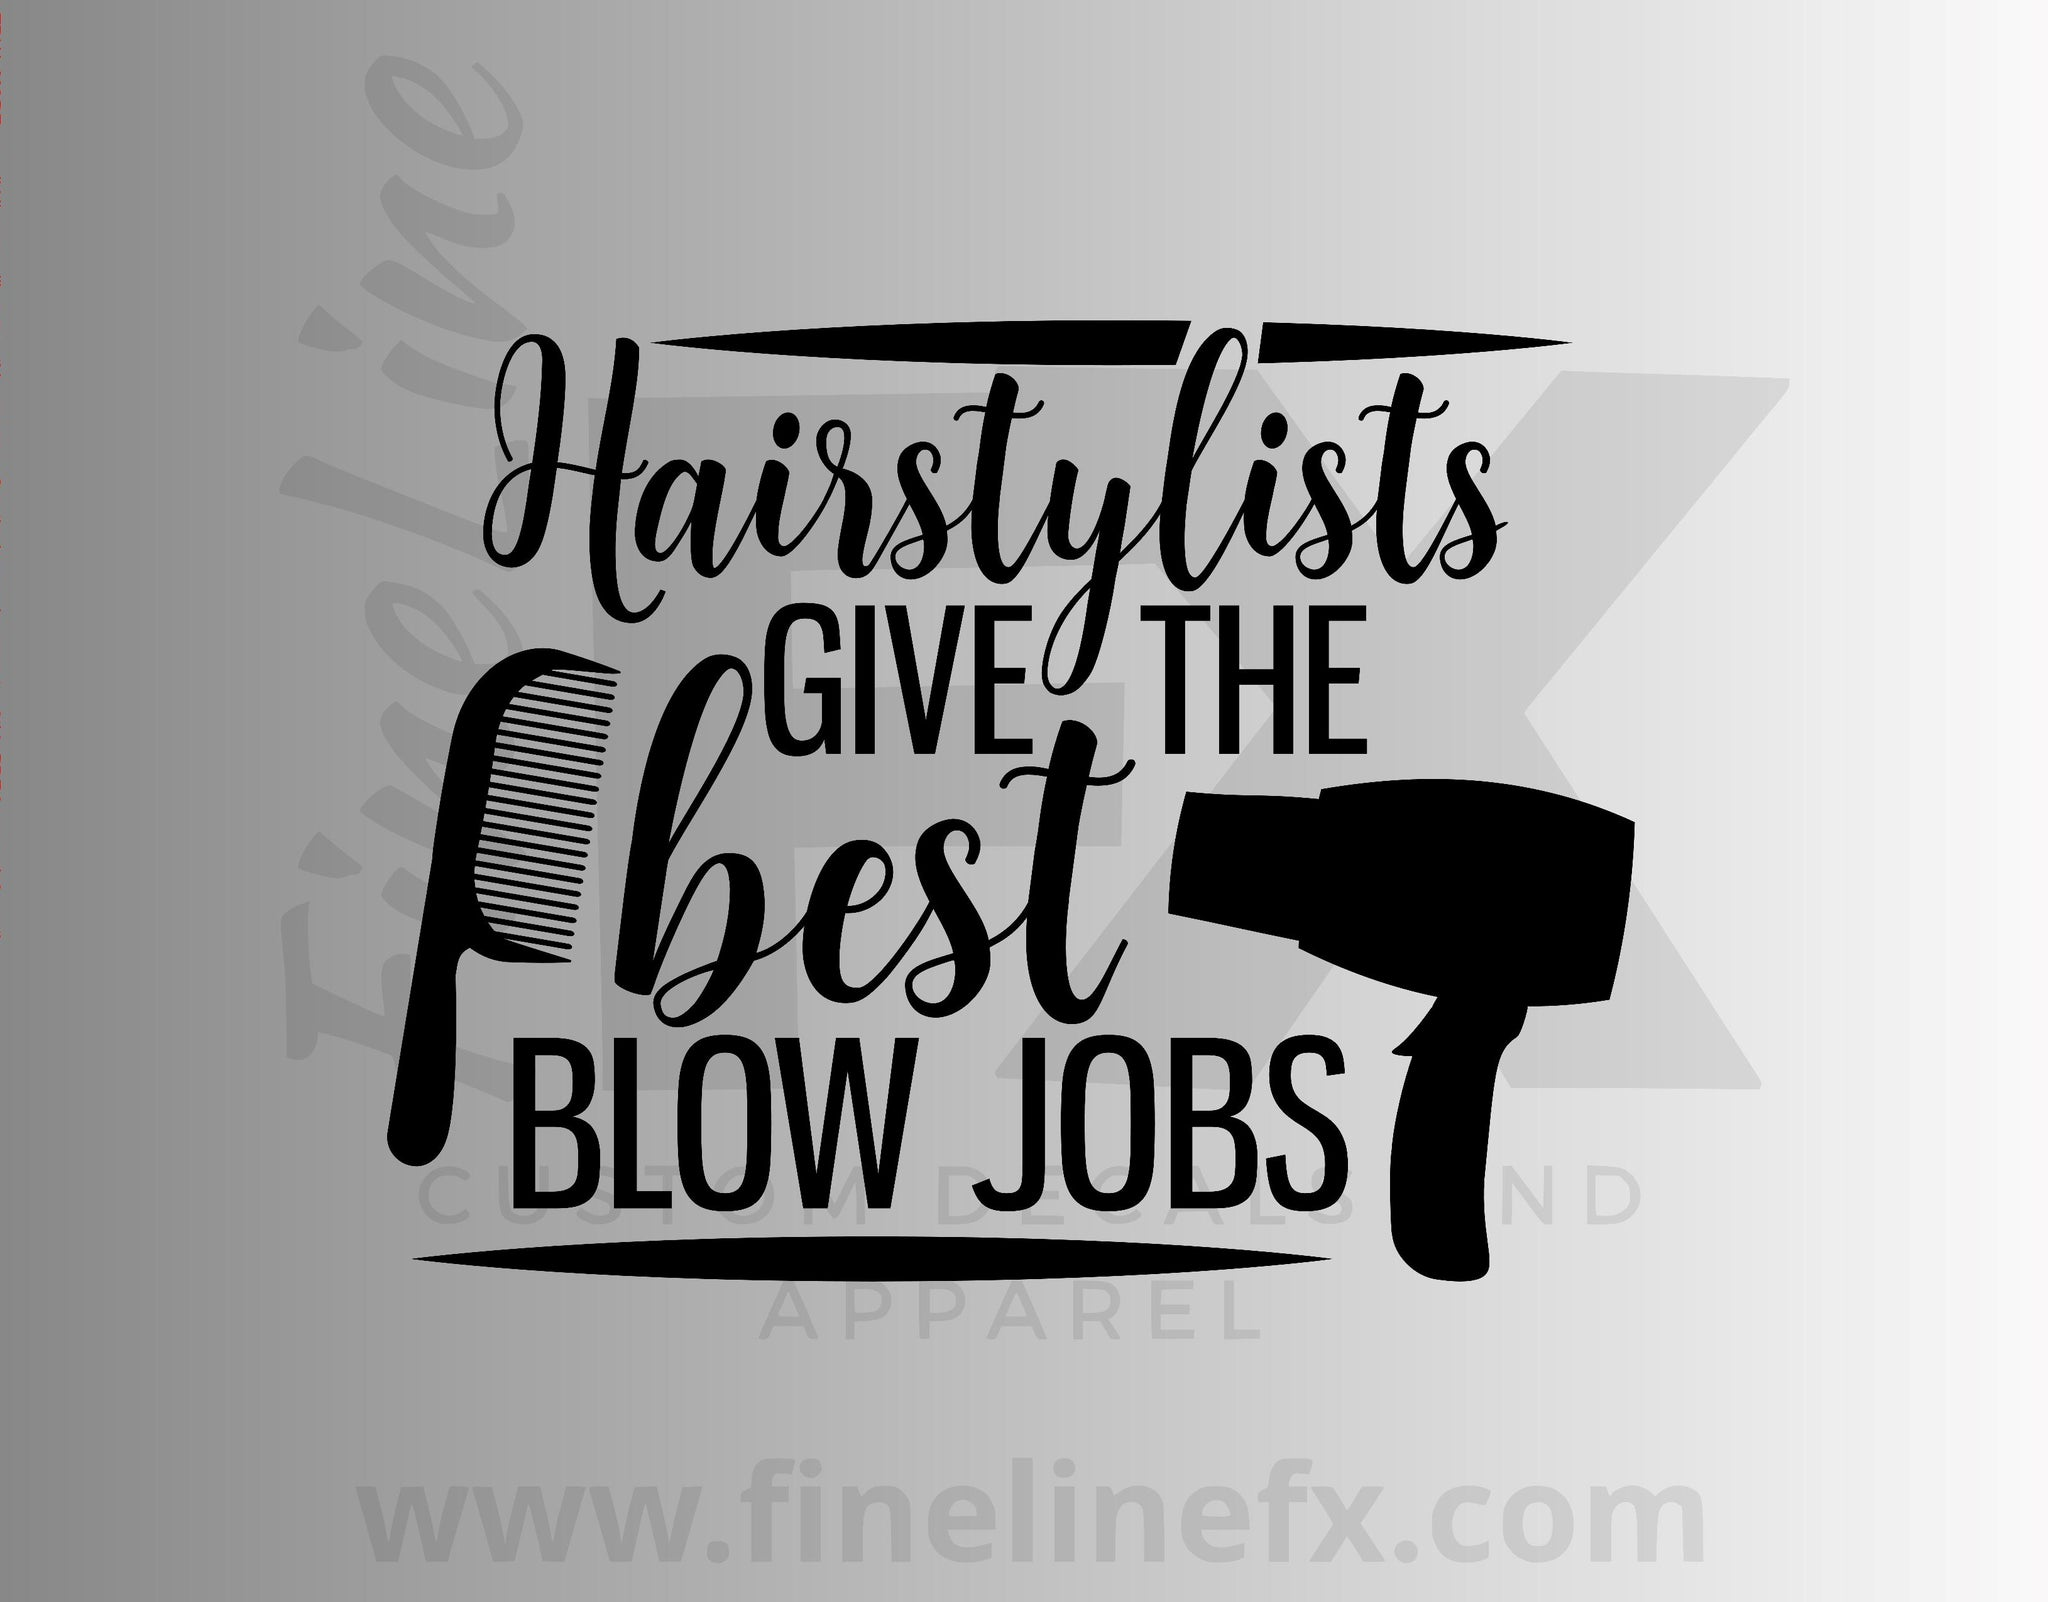 Hairstylists Give The Best Blowjobs Hairstylist Humor Vinyl Decal Sticker